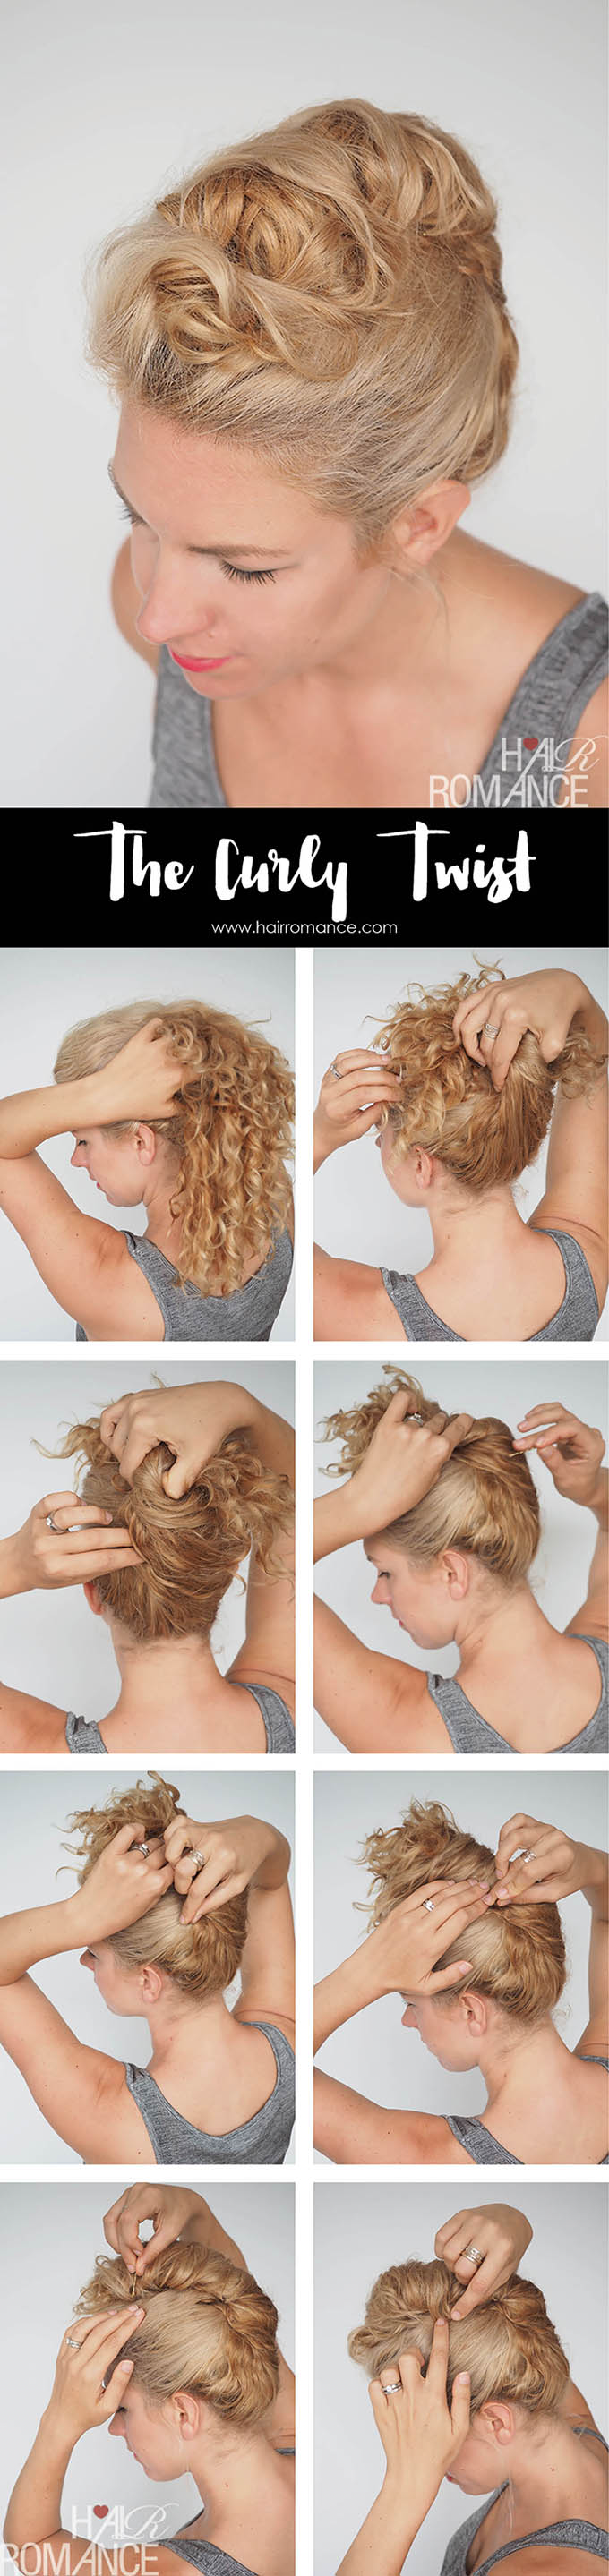 Hair Romance - Curly hair tutorial - easy curly twist updo